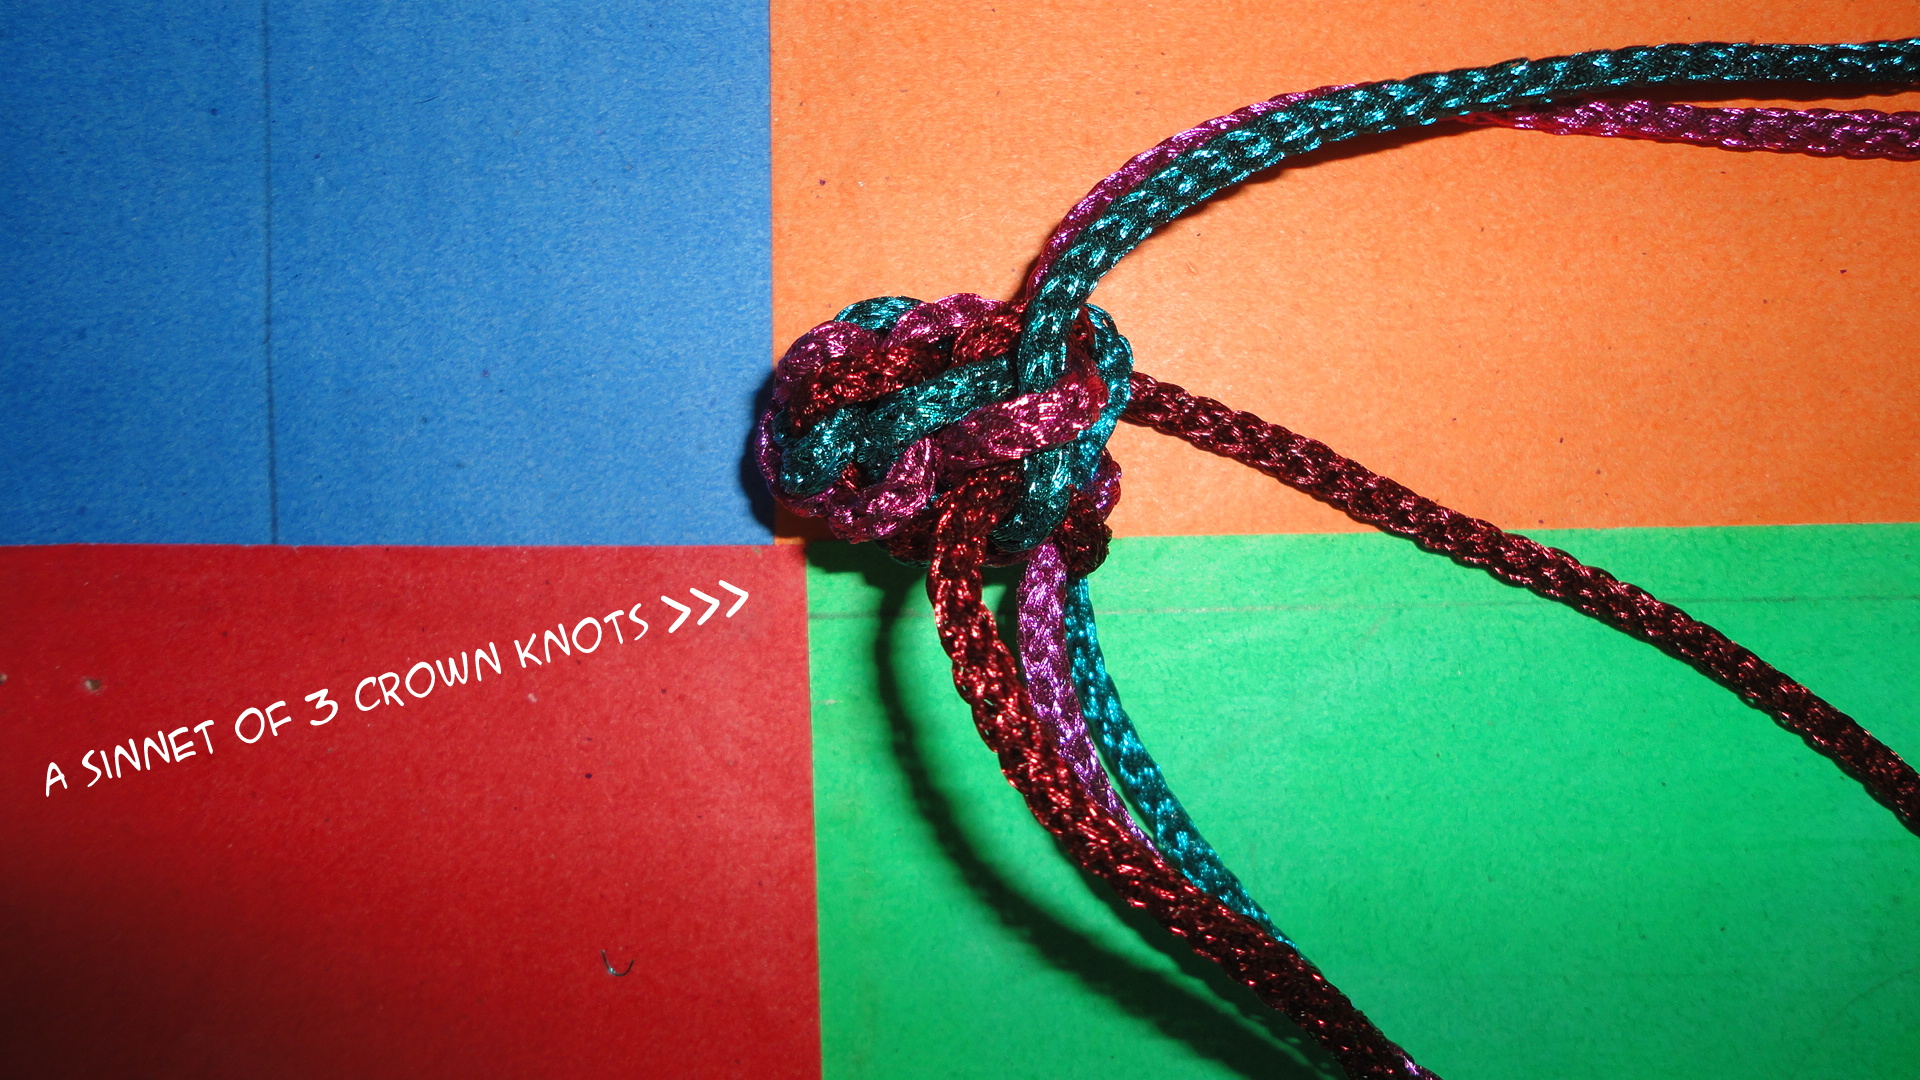 Picture of Keep Working Up and Making Crown Knot 3 More Times...